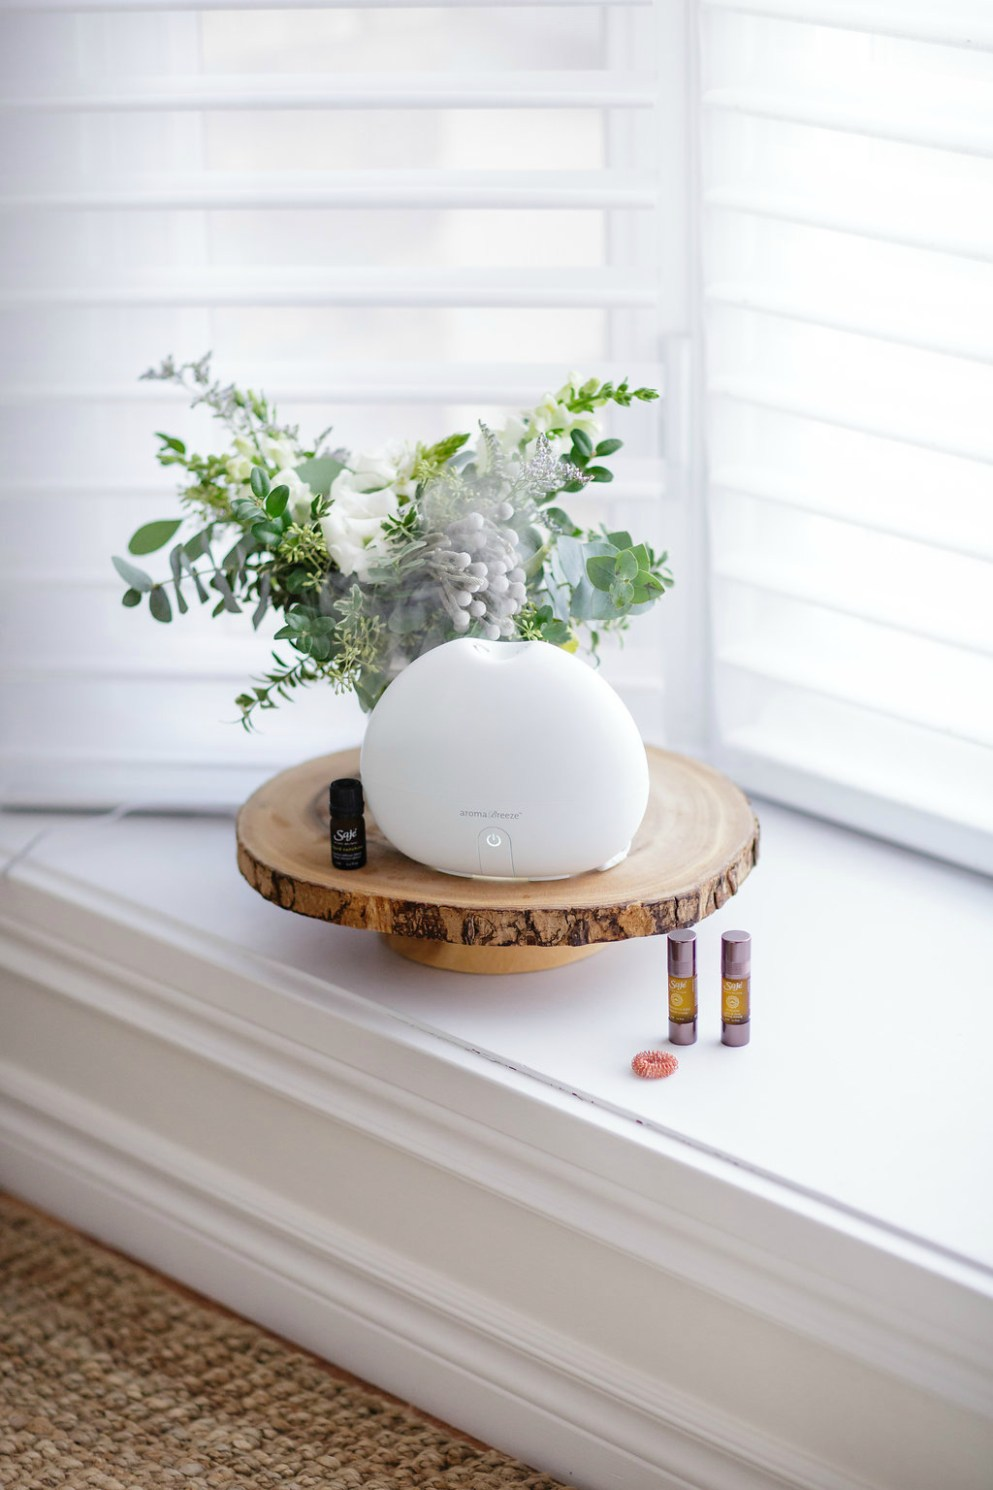 saje-wellness-essential-oils-benefits-diffuser-holiday-gift-ideas-rose-city-style-guide